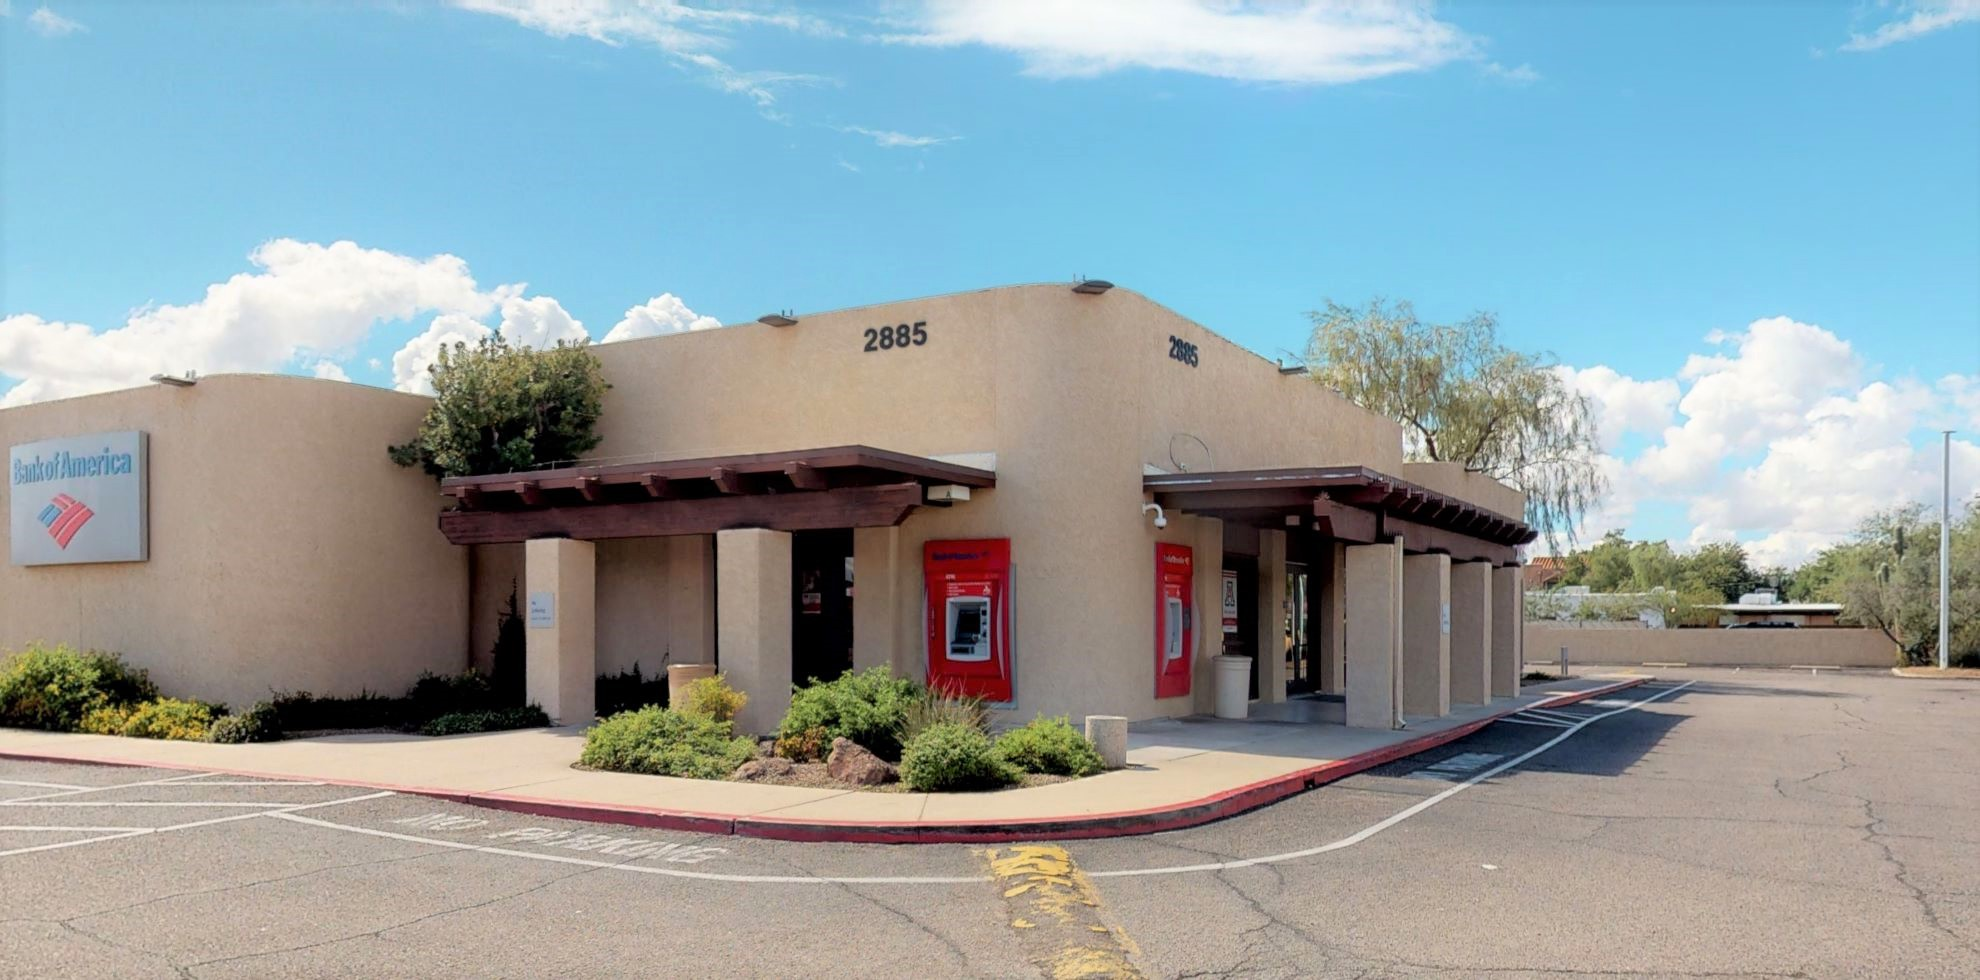 Bank of America financial center with drive-thru ATM   2885 N Campbell Ave, Tucson, AZ 85719